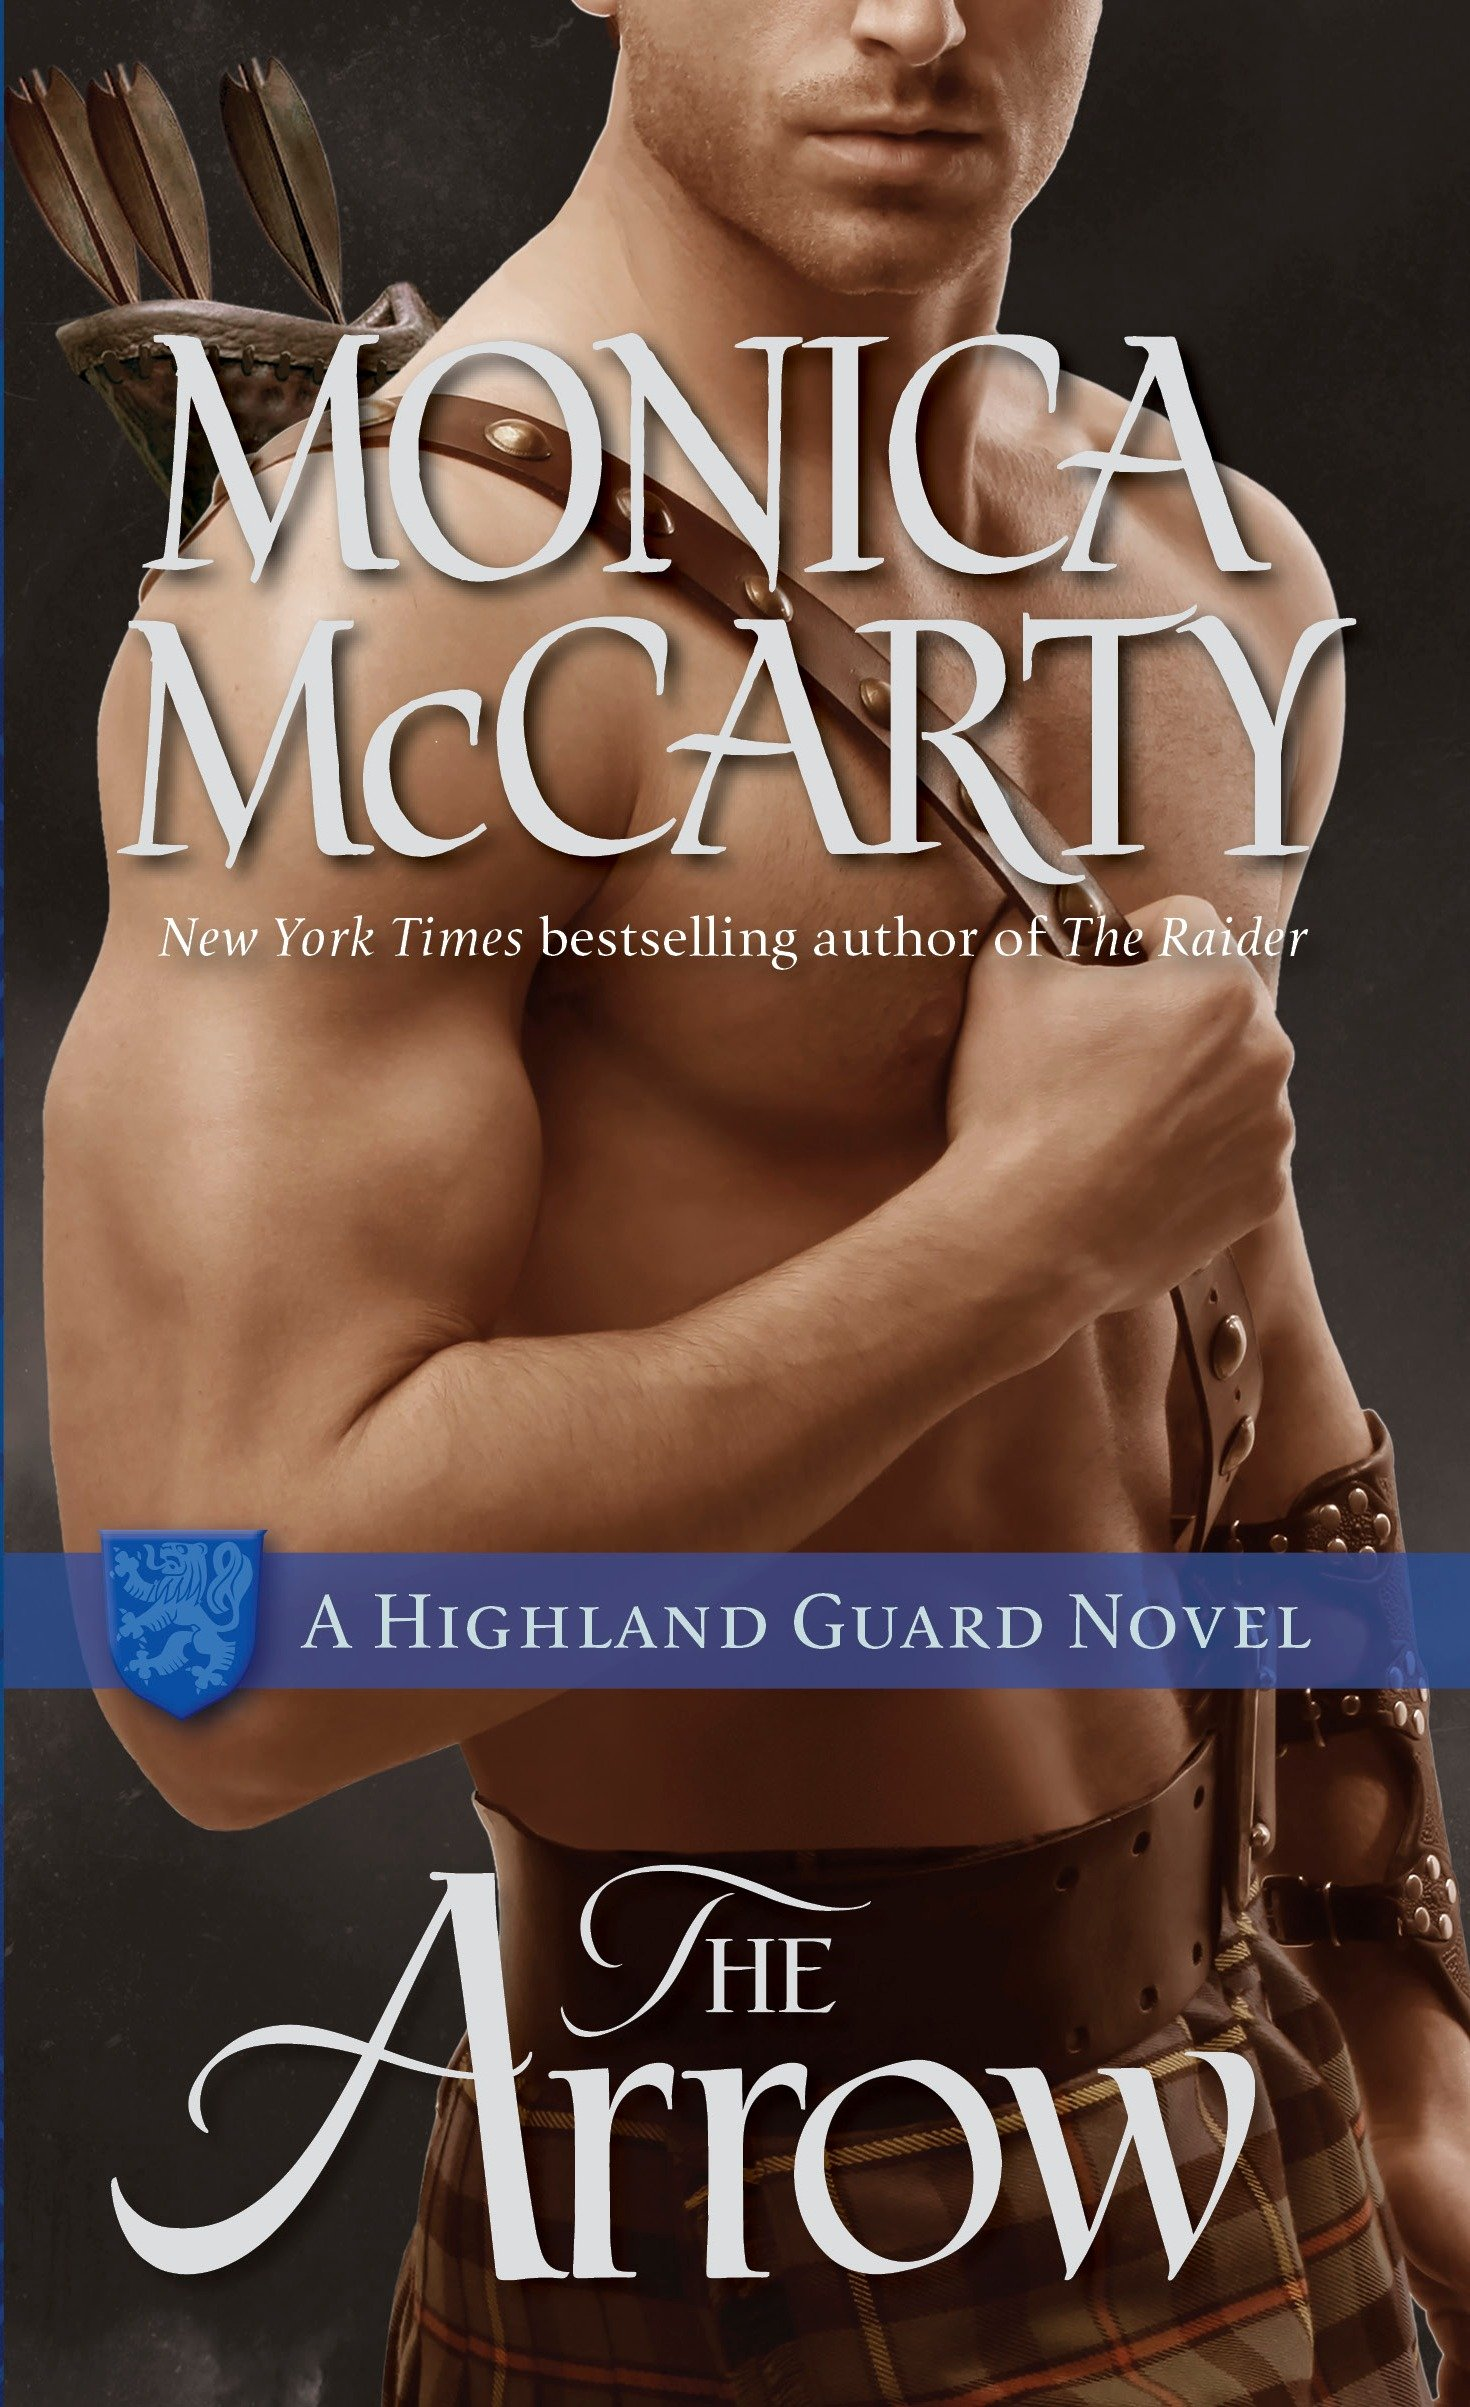 The arrow : a highland guard novel